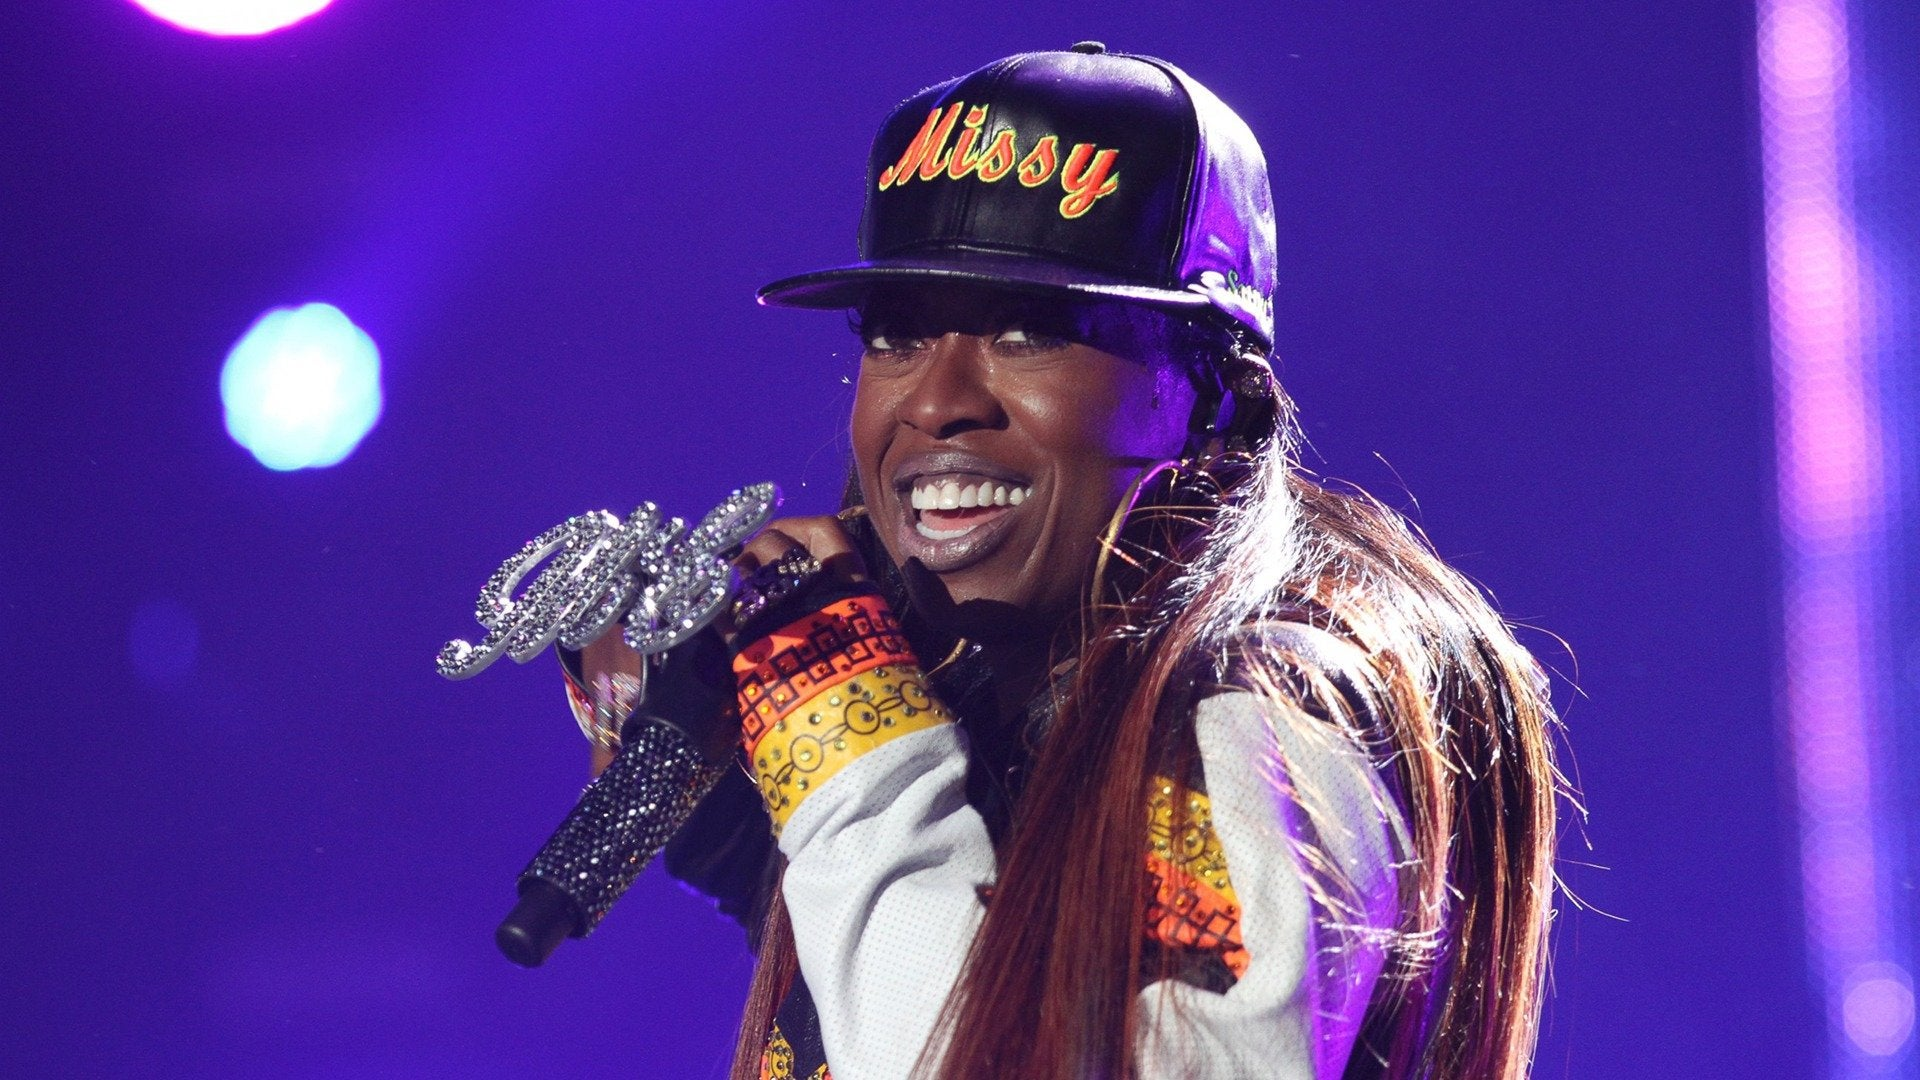 The Best of Missy Elliott